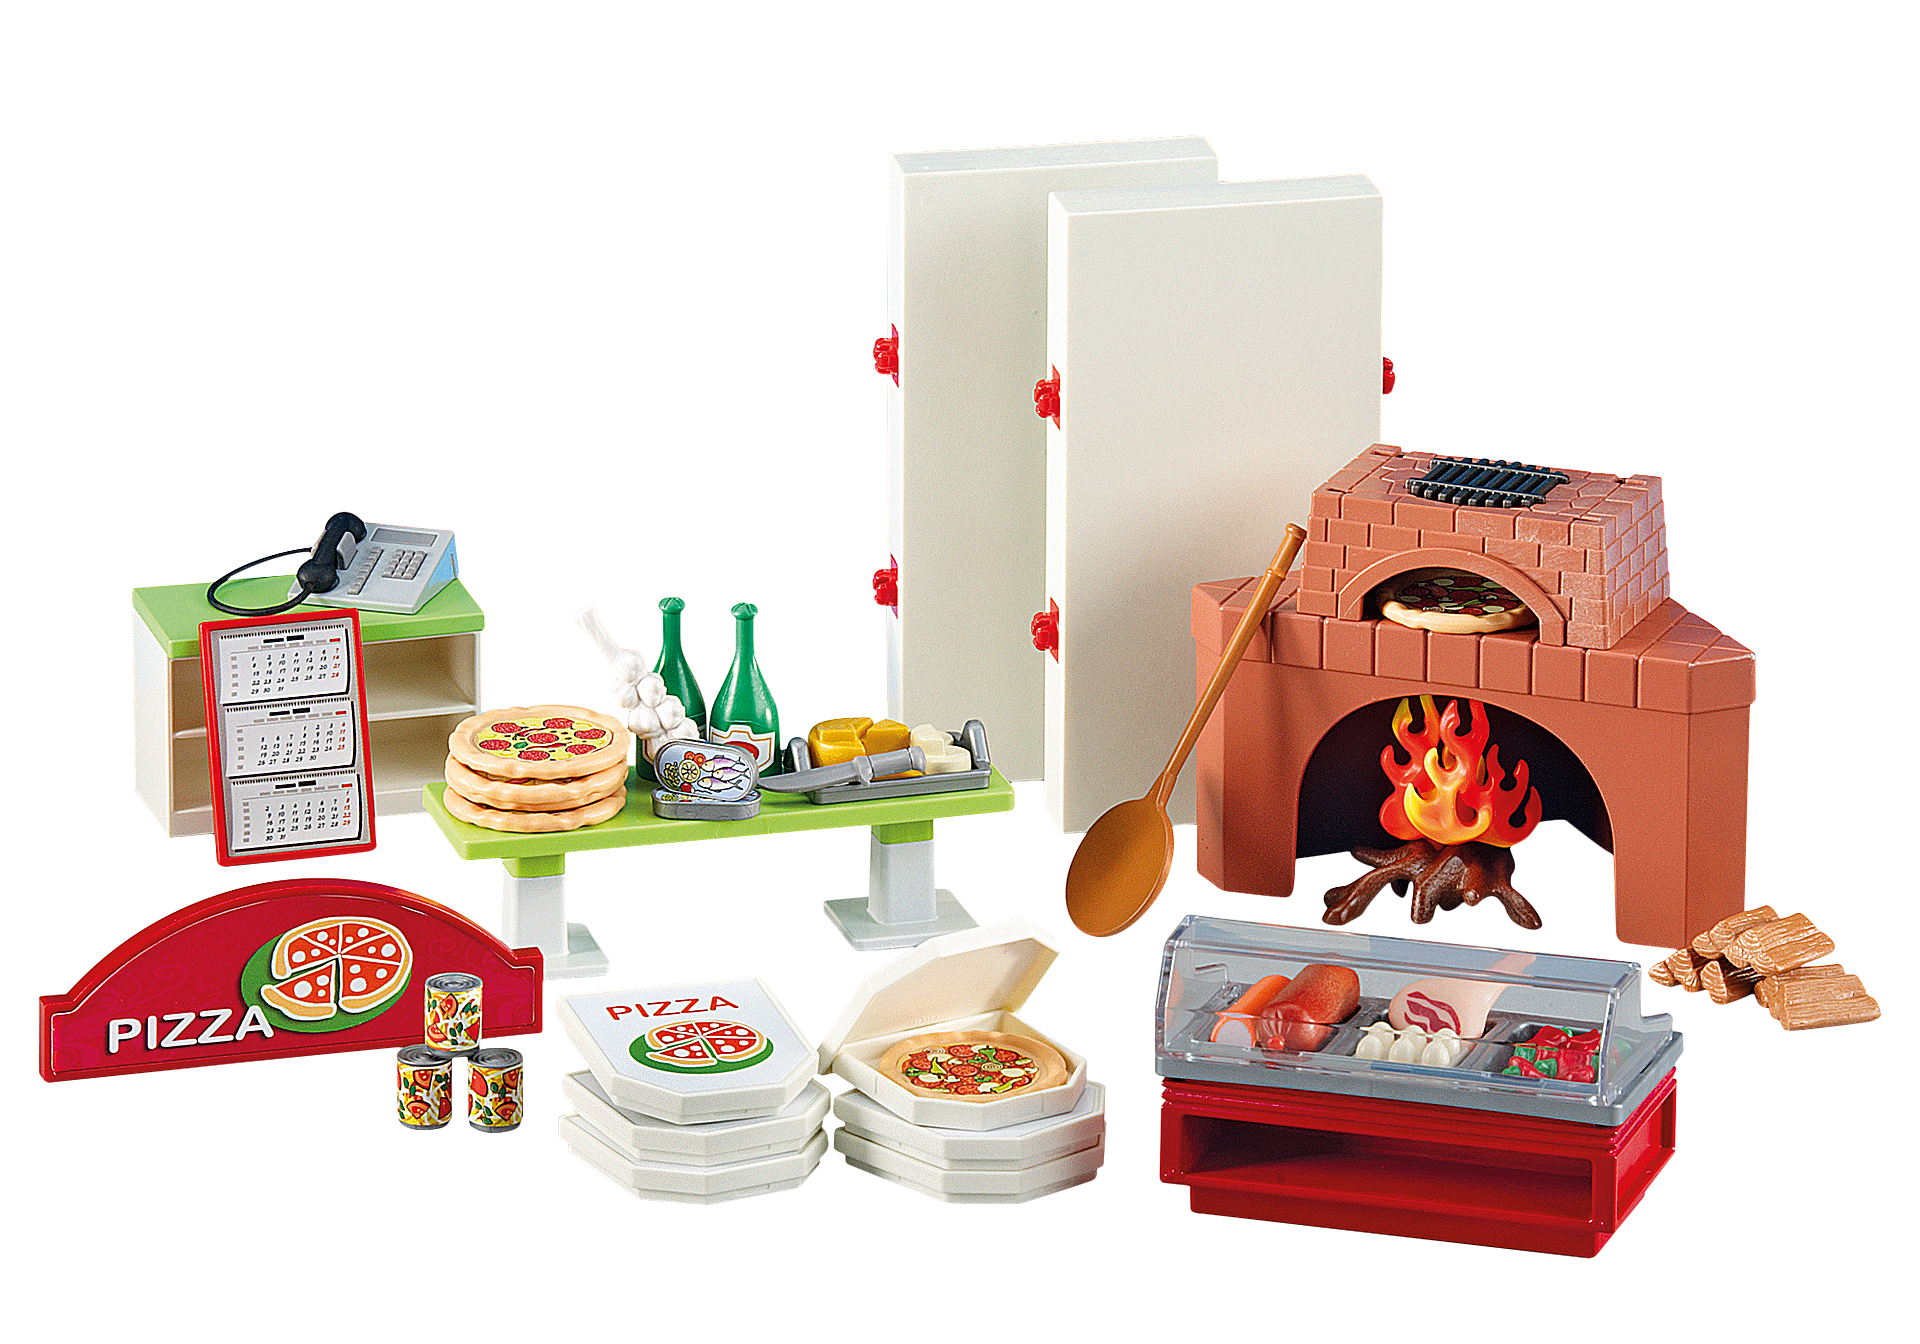 http://media.playmobil.com/i/playmobil/6291_product_detail/Pizzeria